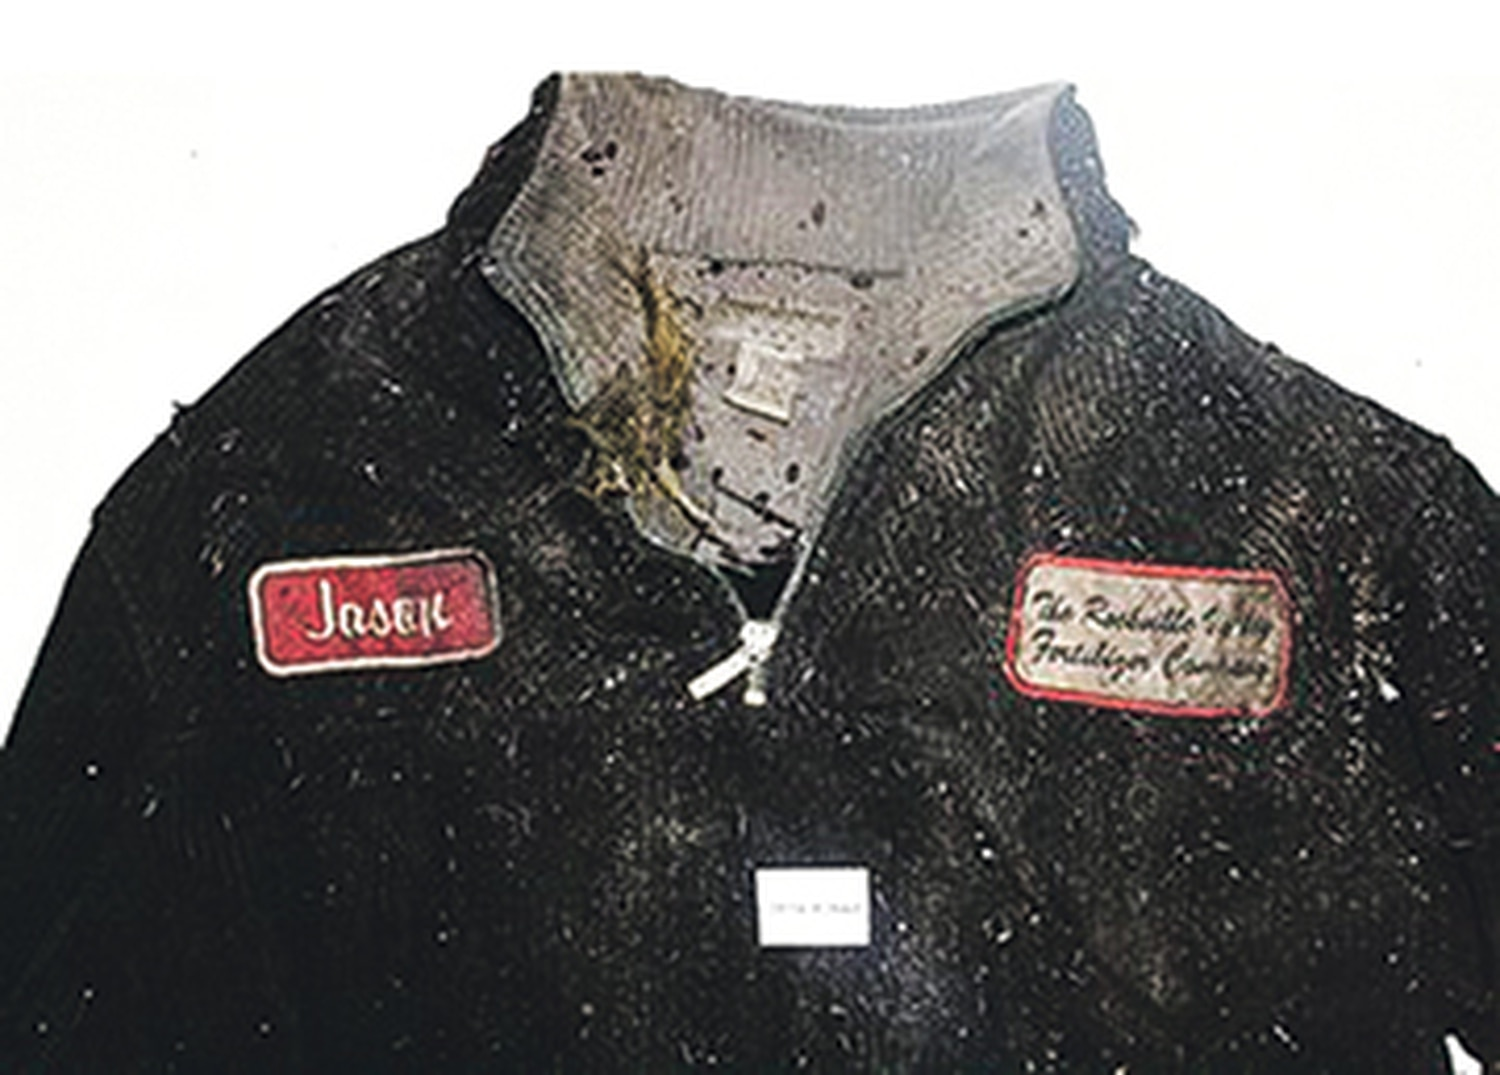 The man wearing this sweatshirt was found dead at the same location near Lordsburg where police had spoken to him months earlier. His identity remains a mystery.